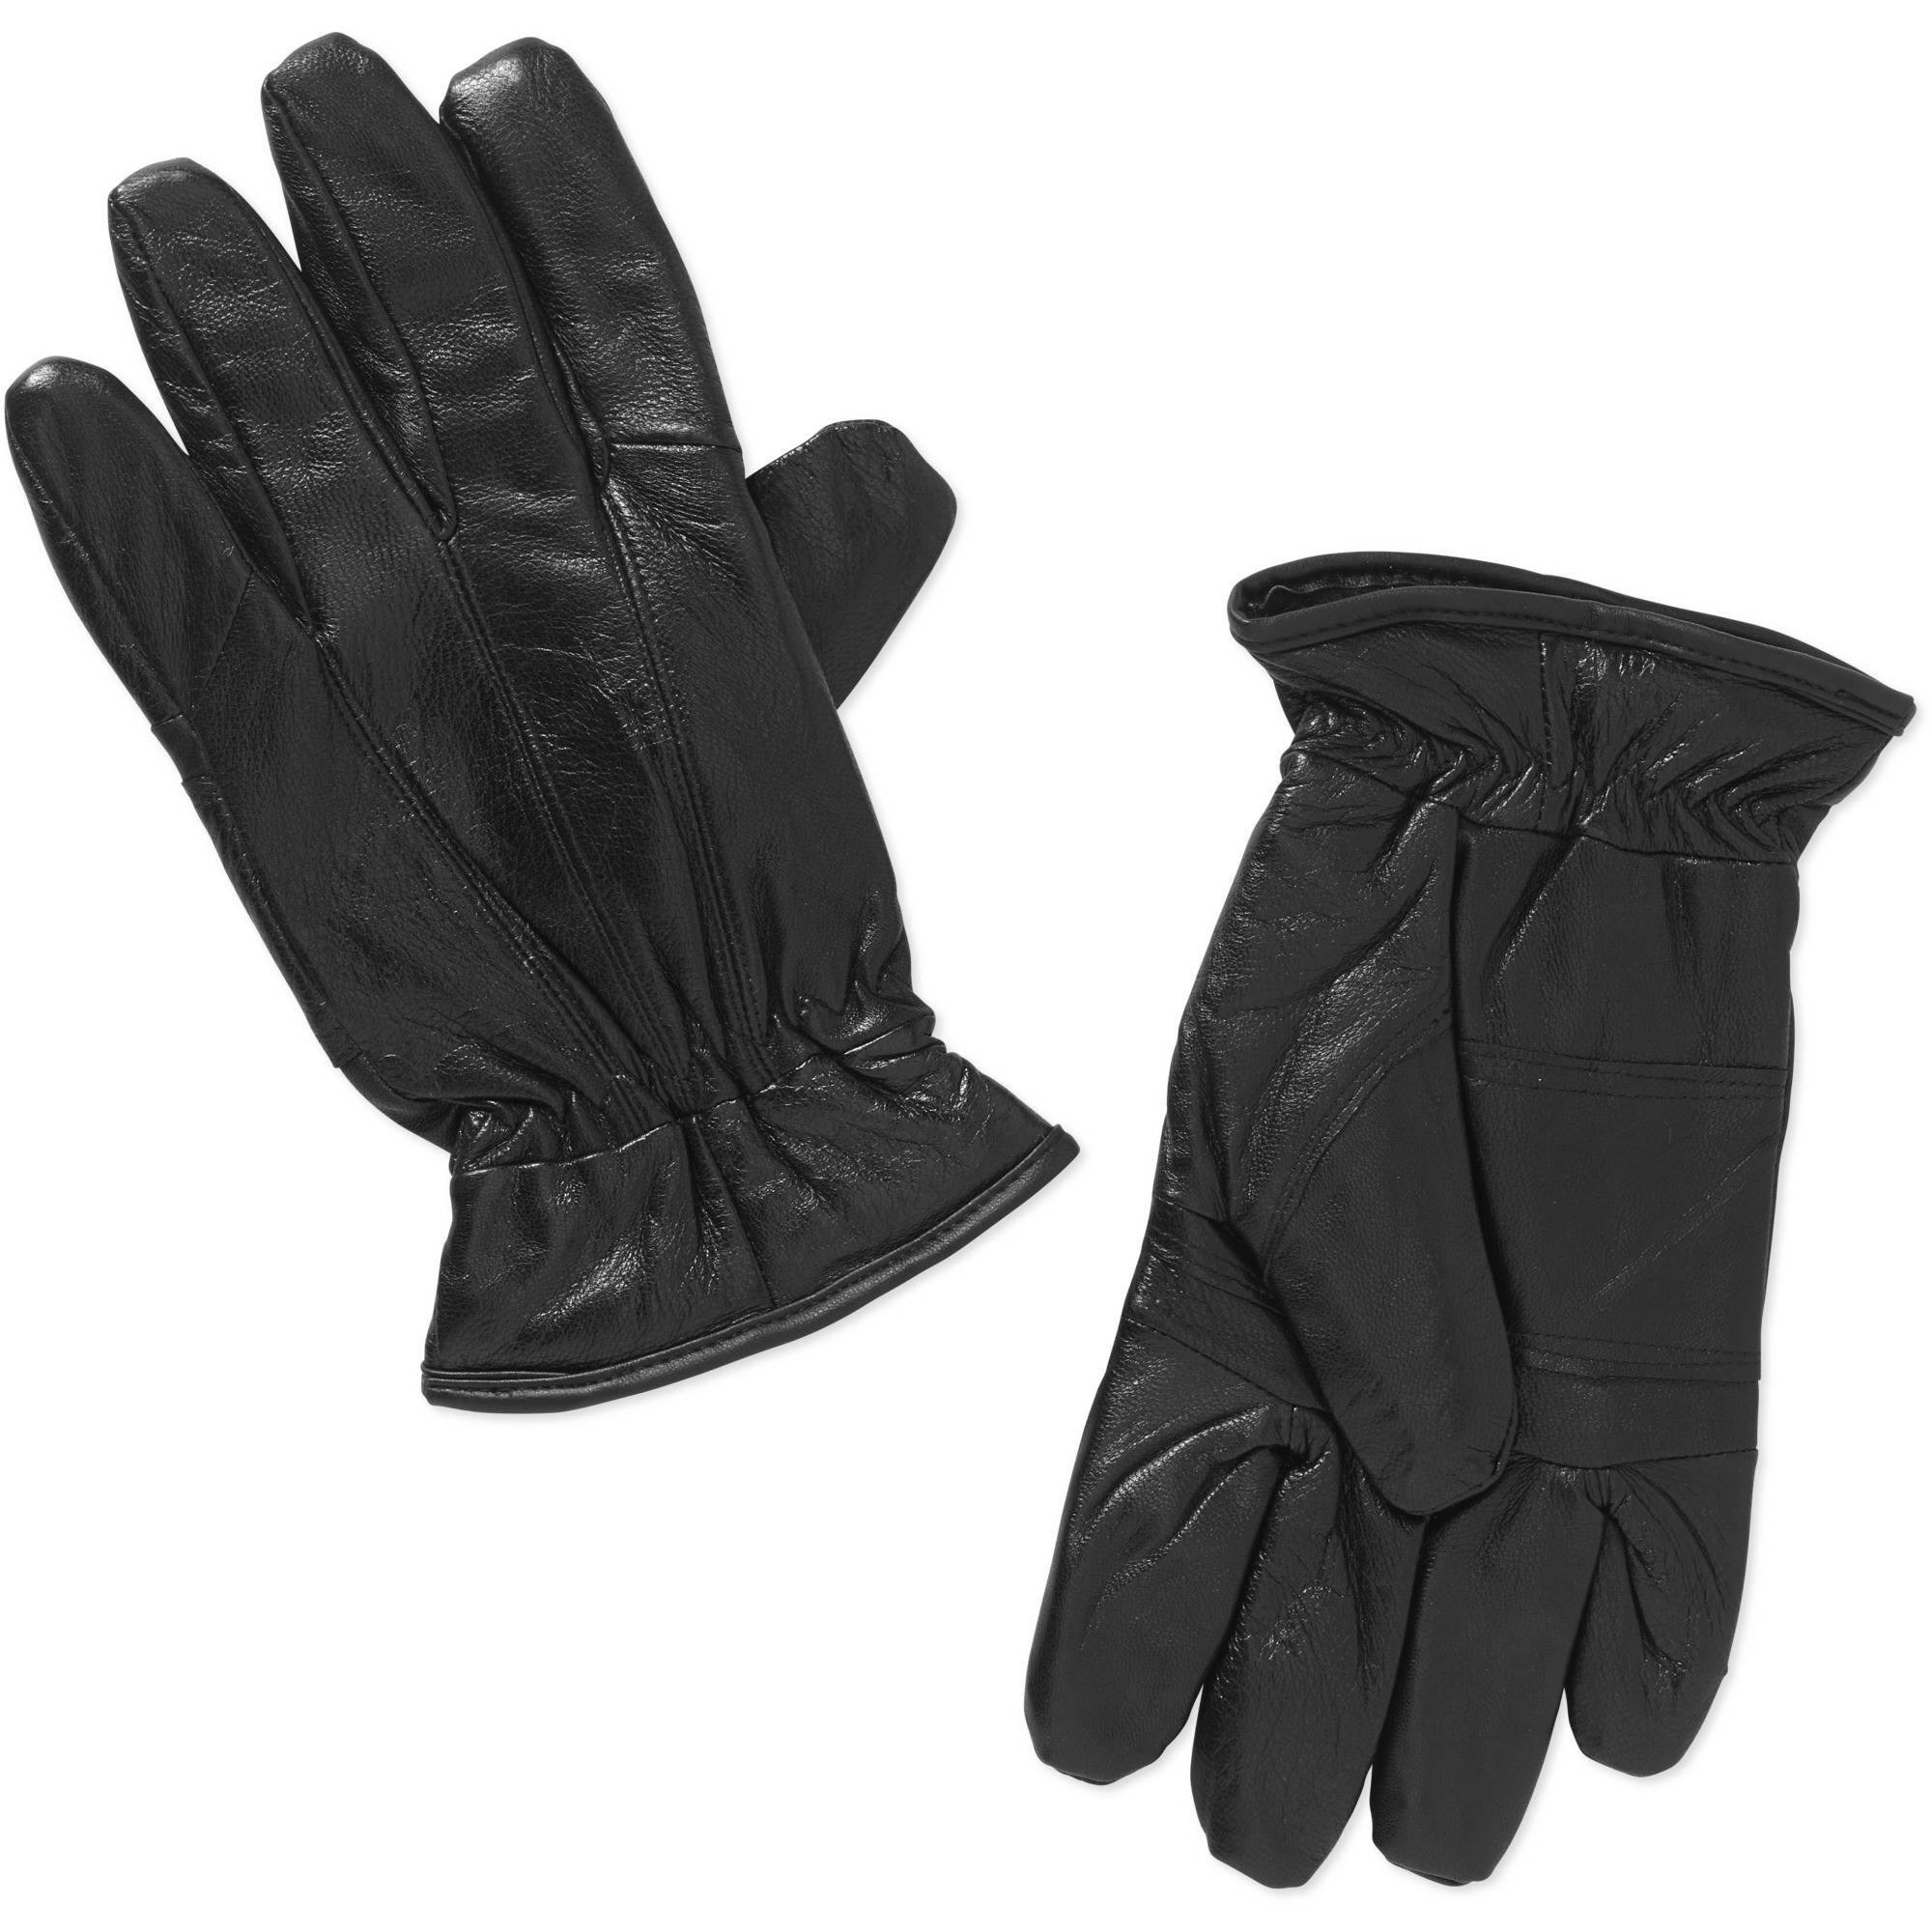 Mens black leather gloves xl - Mens Black Leather Gloves Xl 51